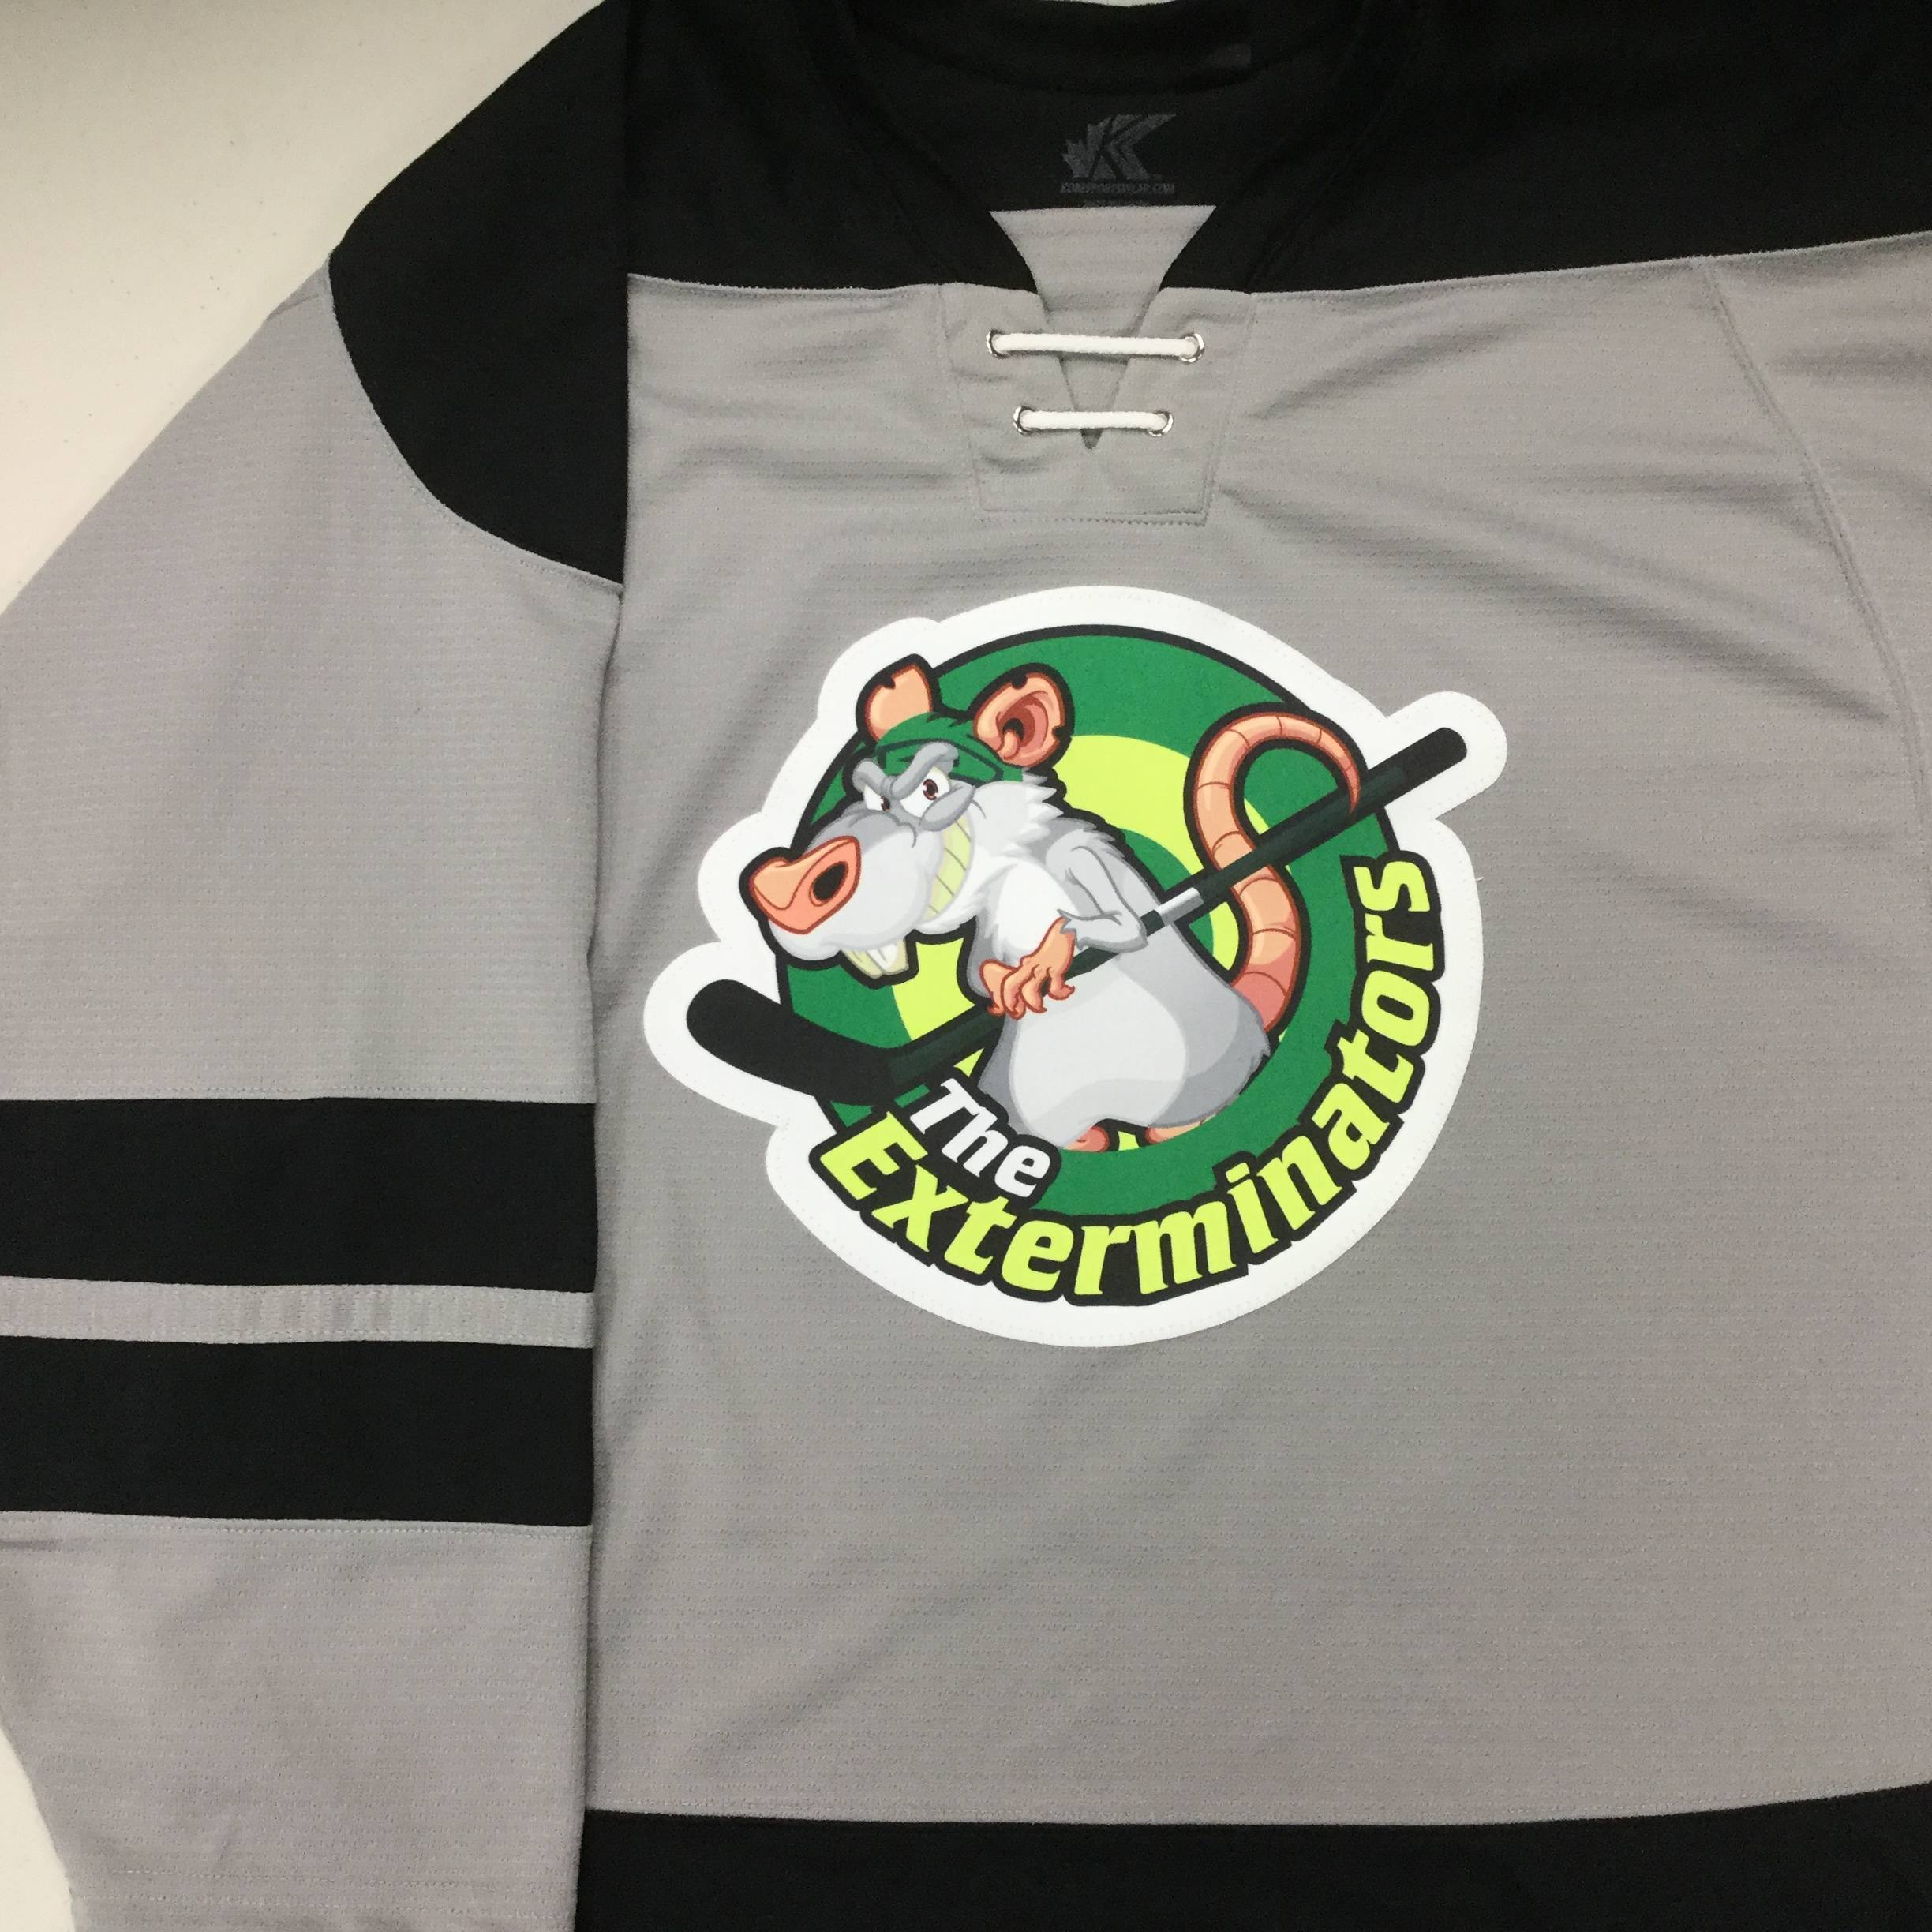 Custom Hockey Jersey With Sublimated Twill Crest on Kobe K3G16R Los Angeles Kings Grey: Exterminators